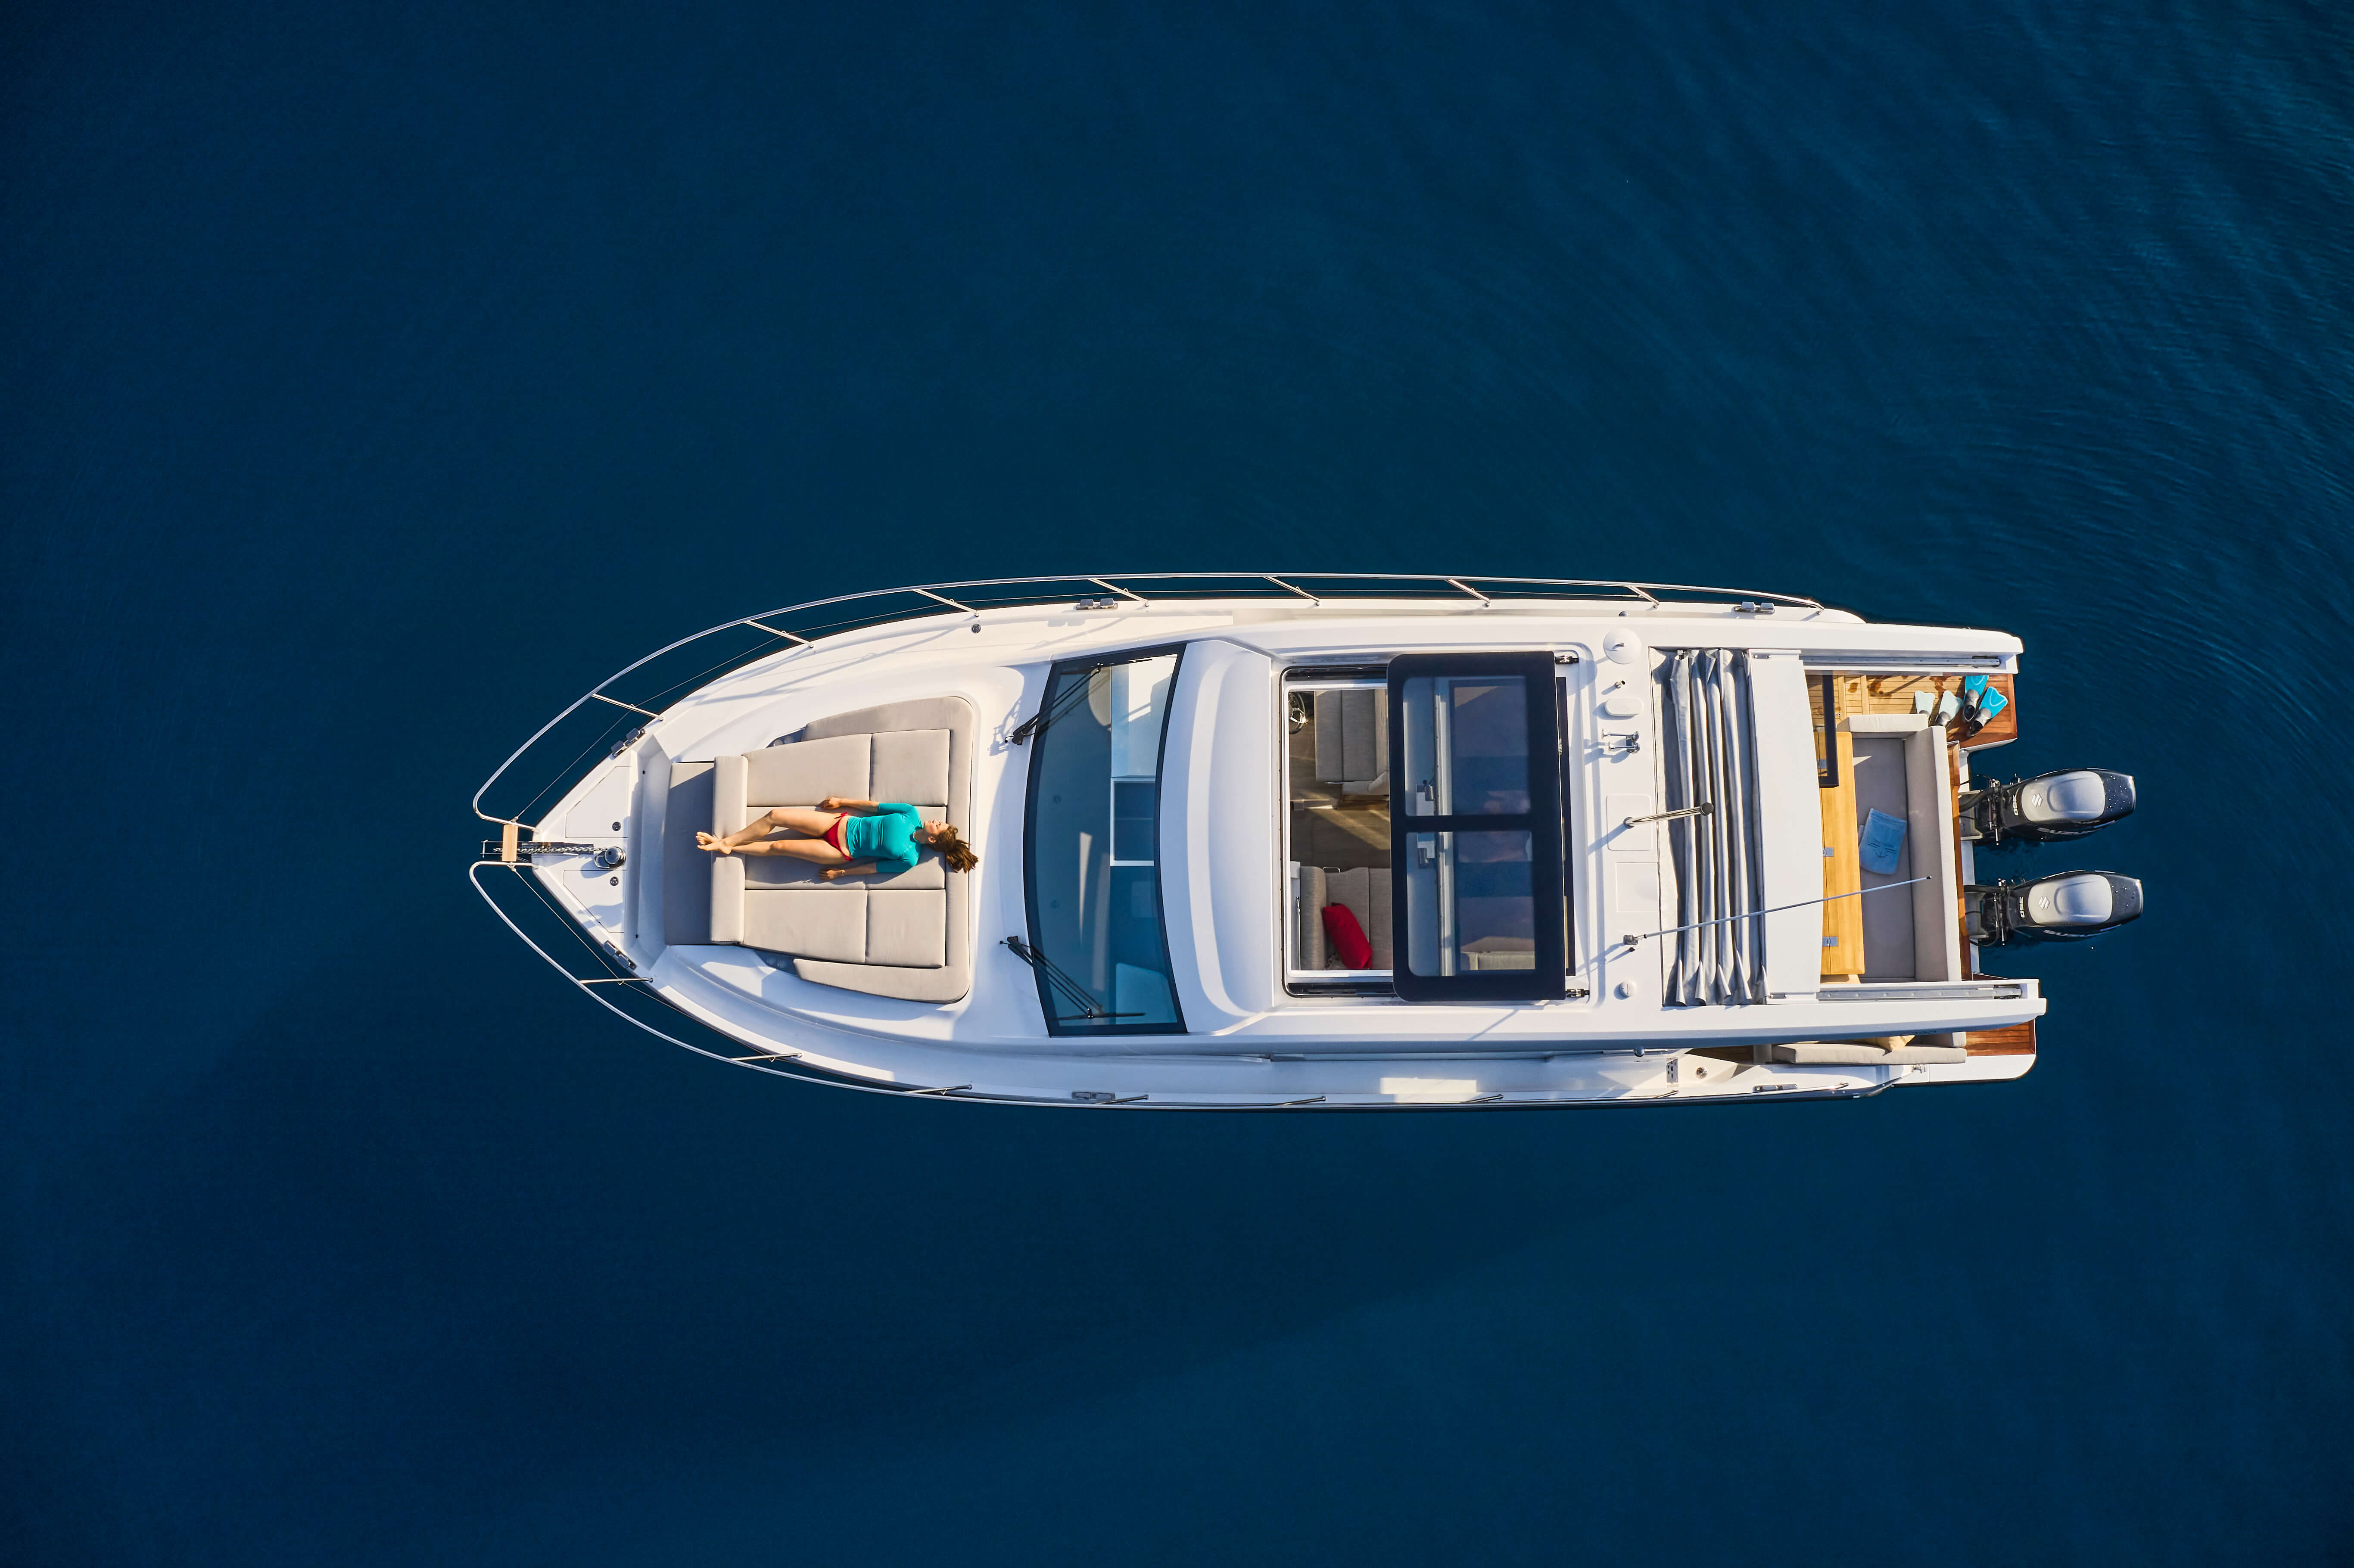 Sealine C390v exterior | Bird's eye view | Sealine